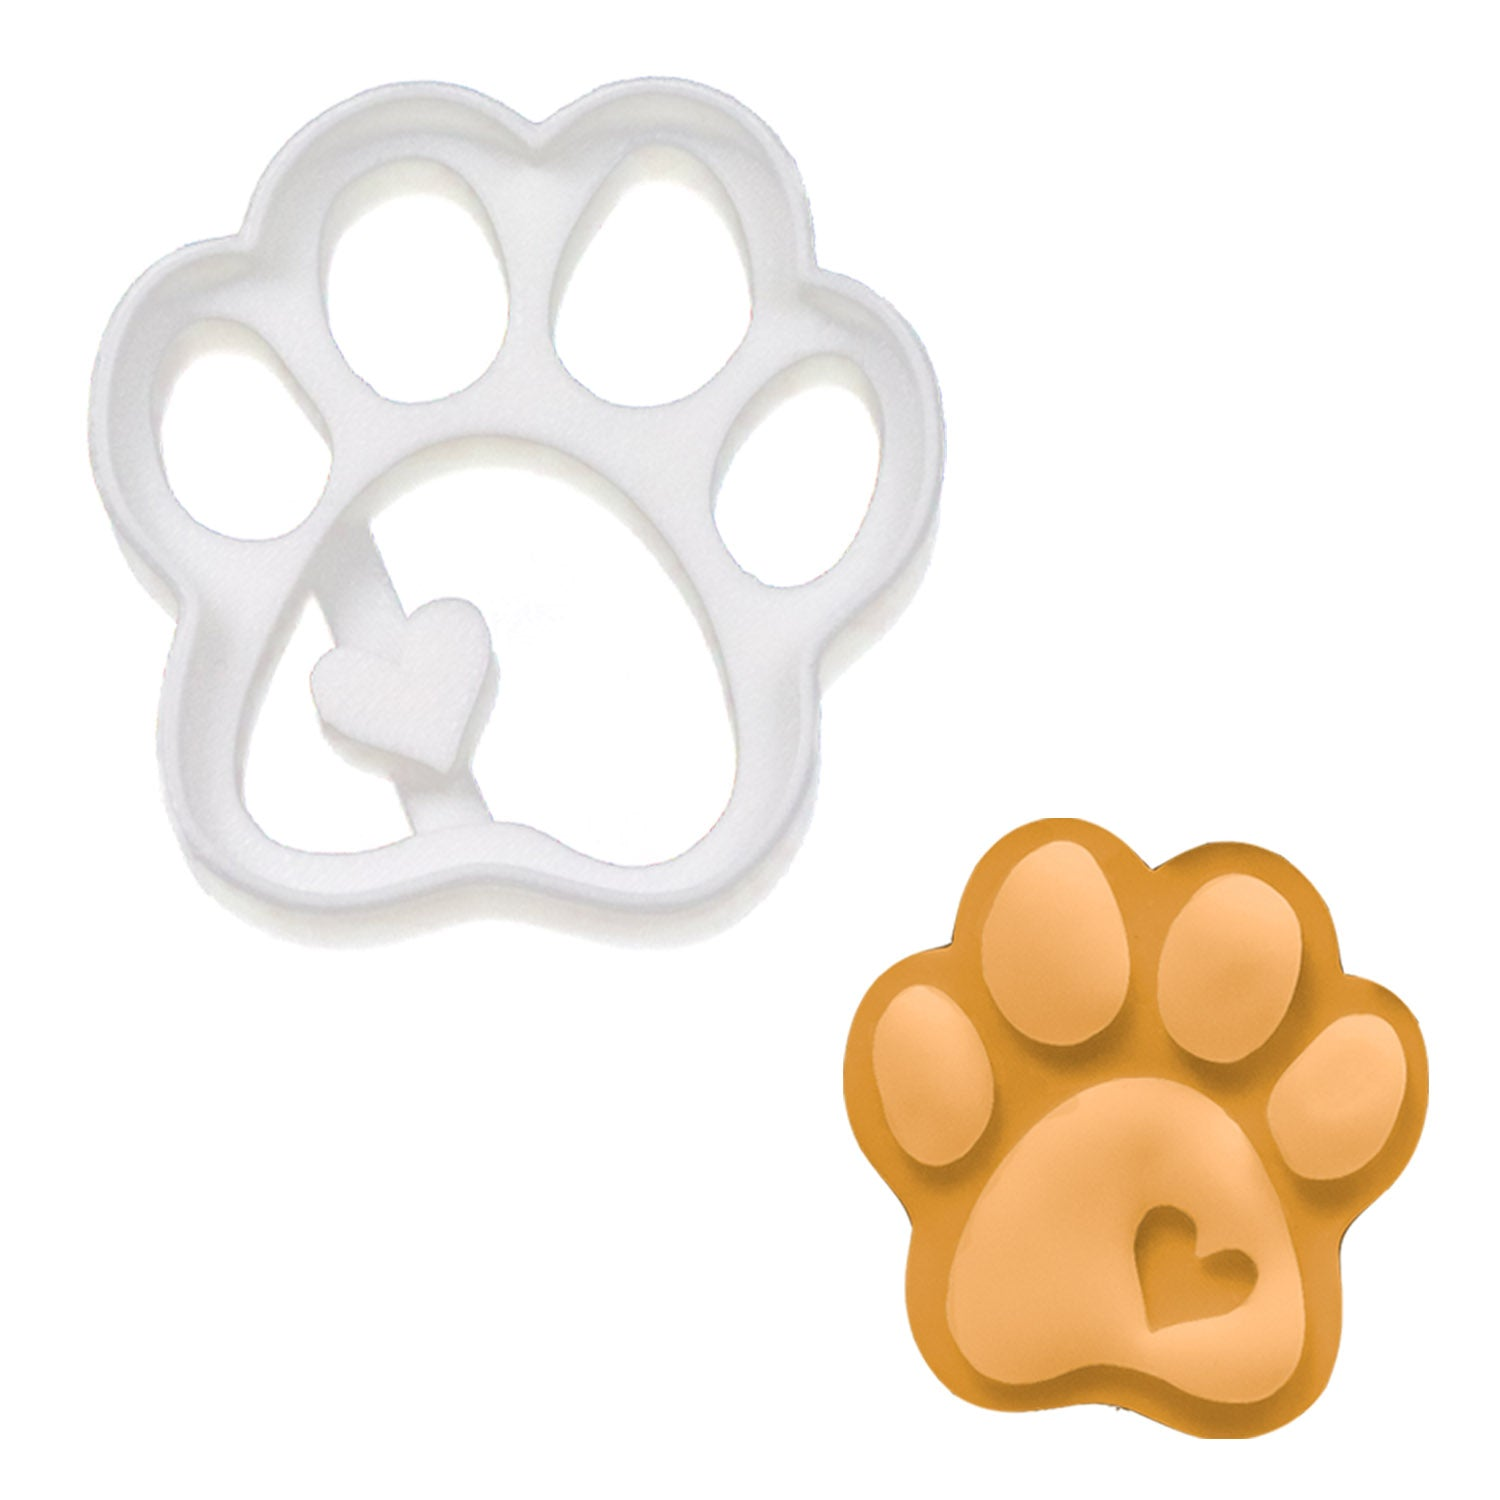 small cute paw cookie cutter